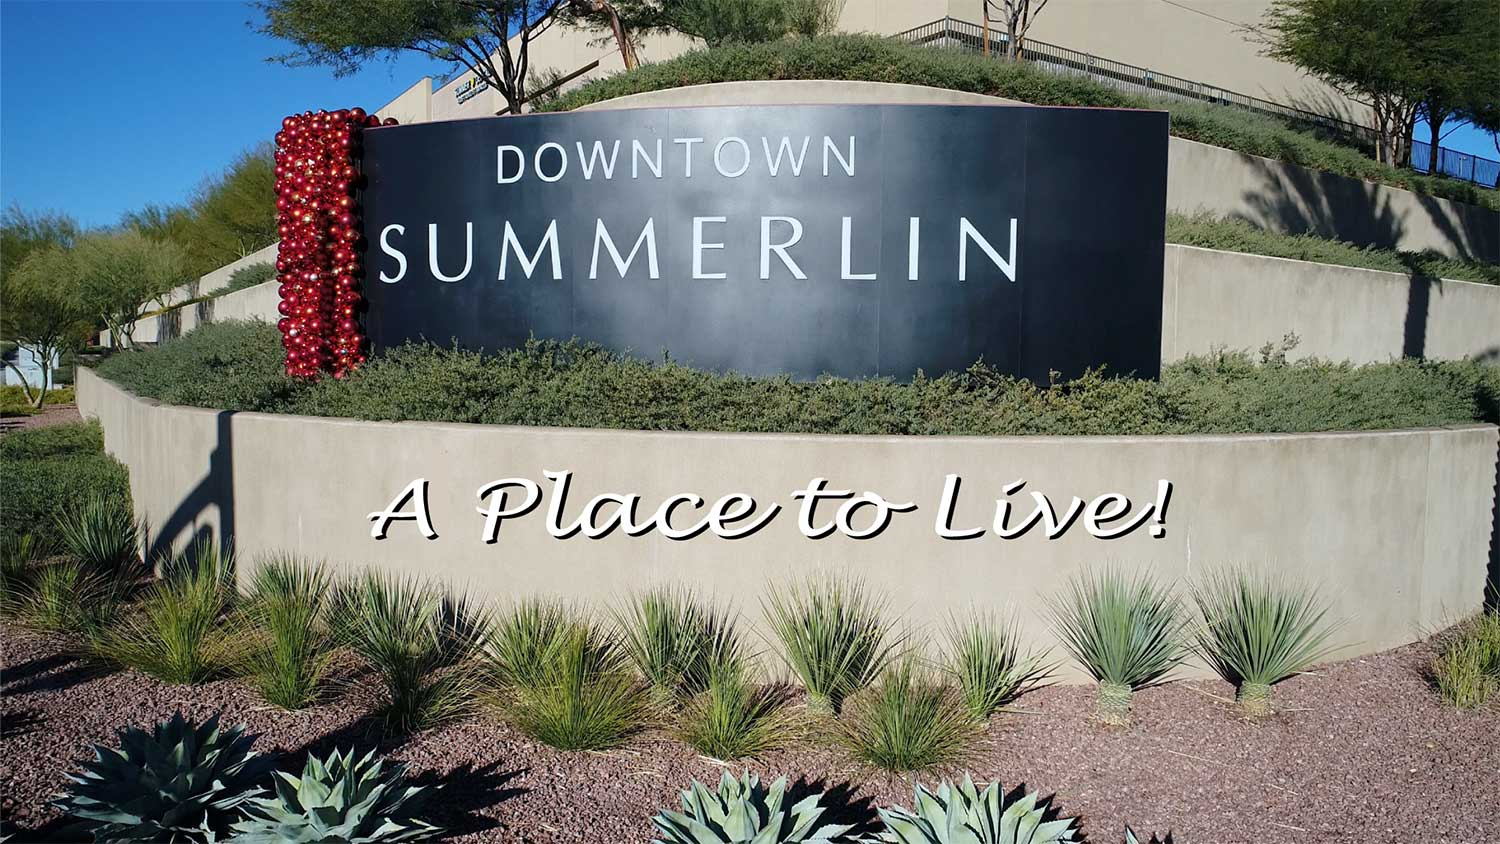 Summerln - a Place to Live, this image is of the Downtown Summerlin sign